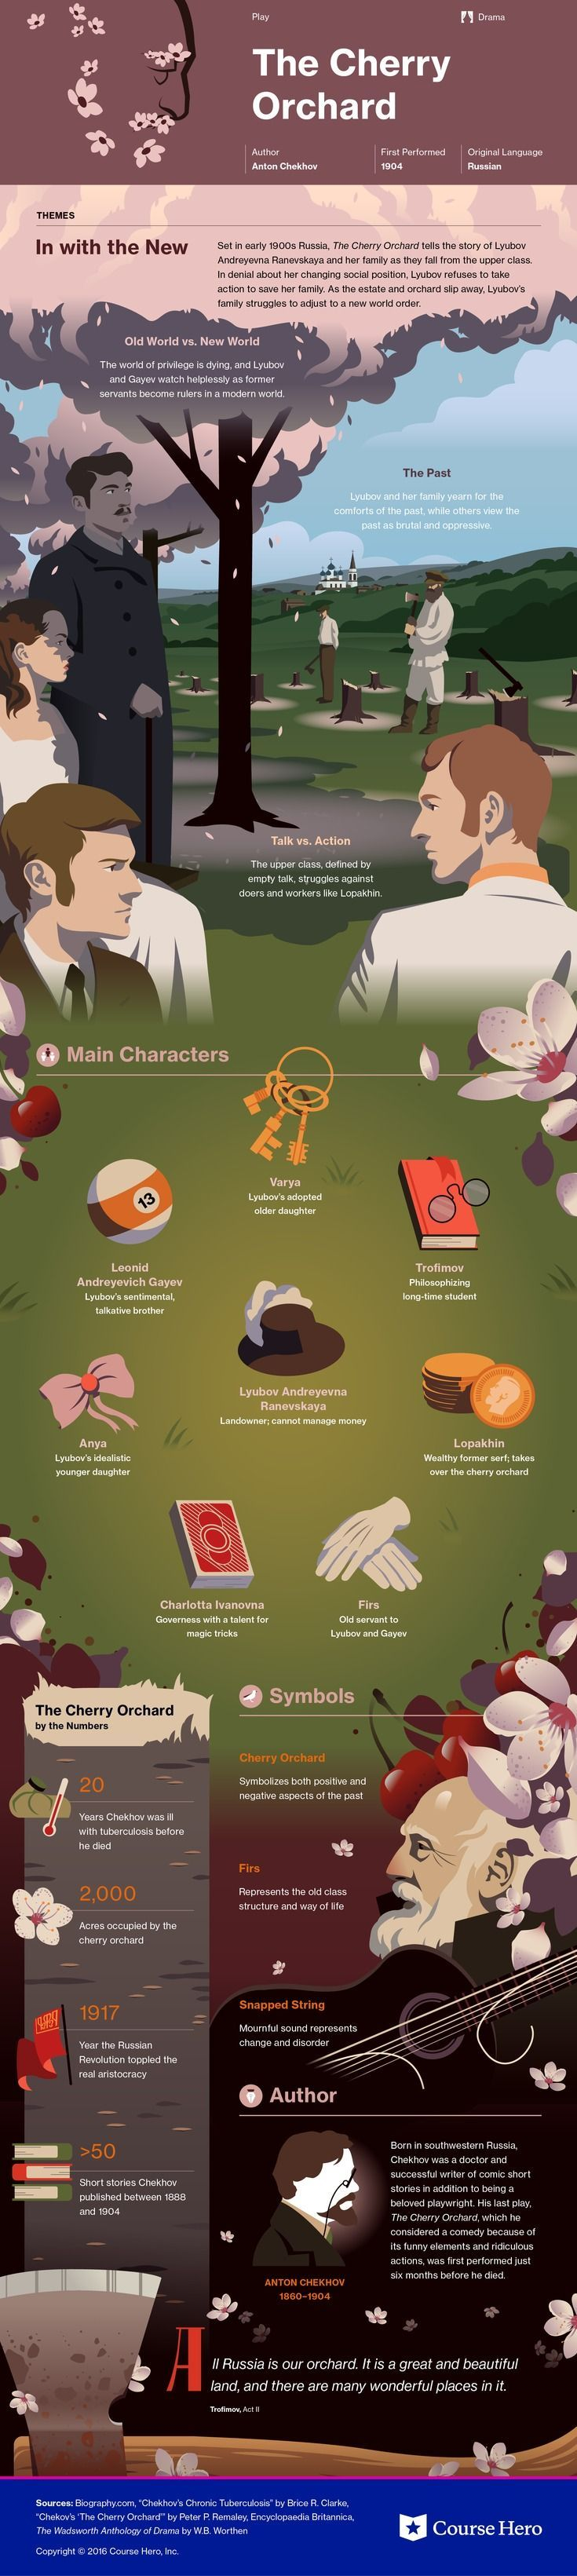 Cherry Orchard Infographic   Course Hero